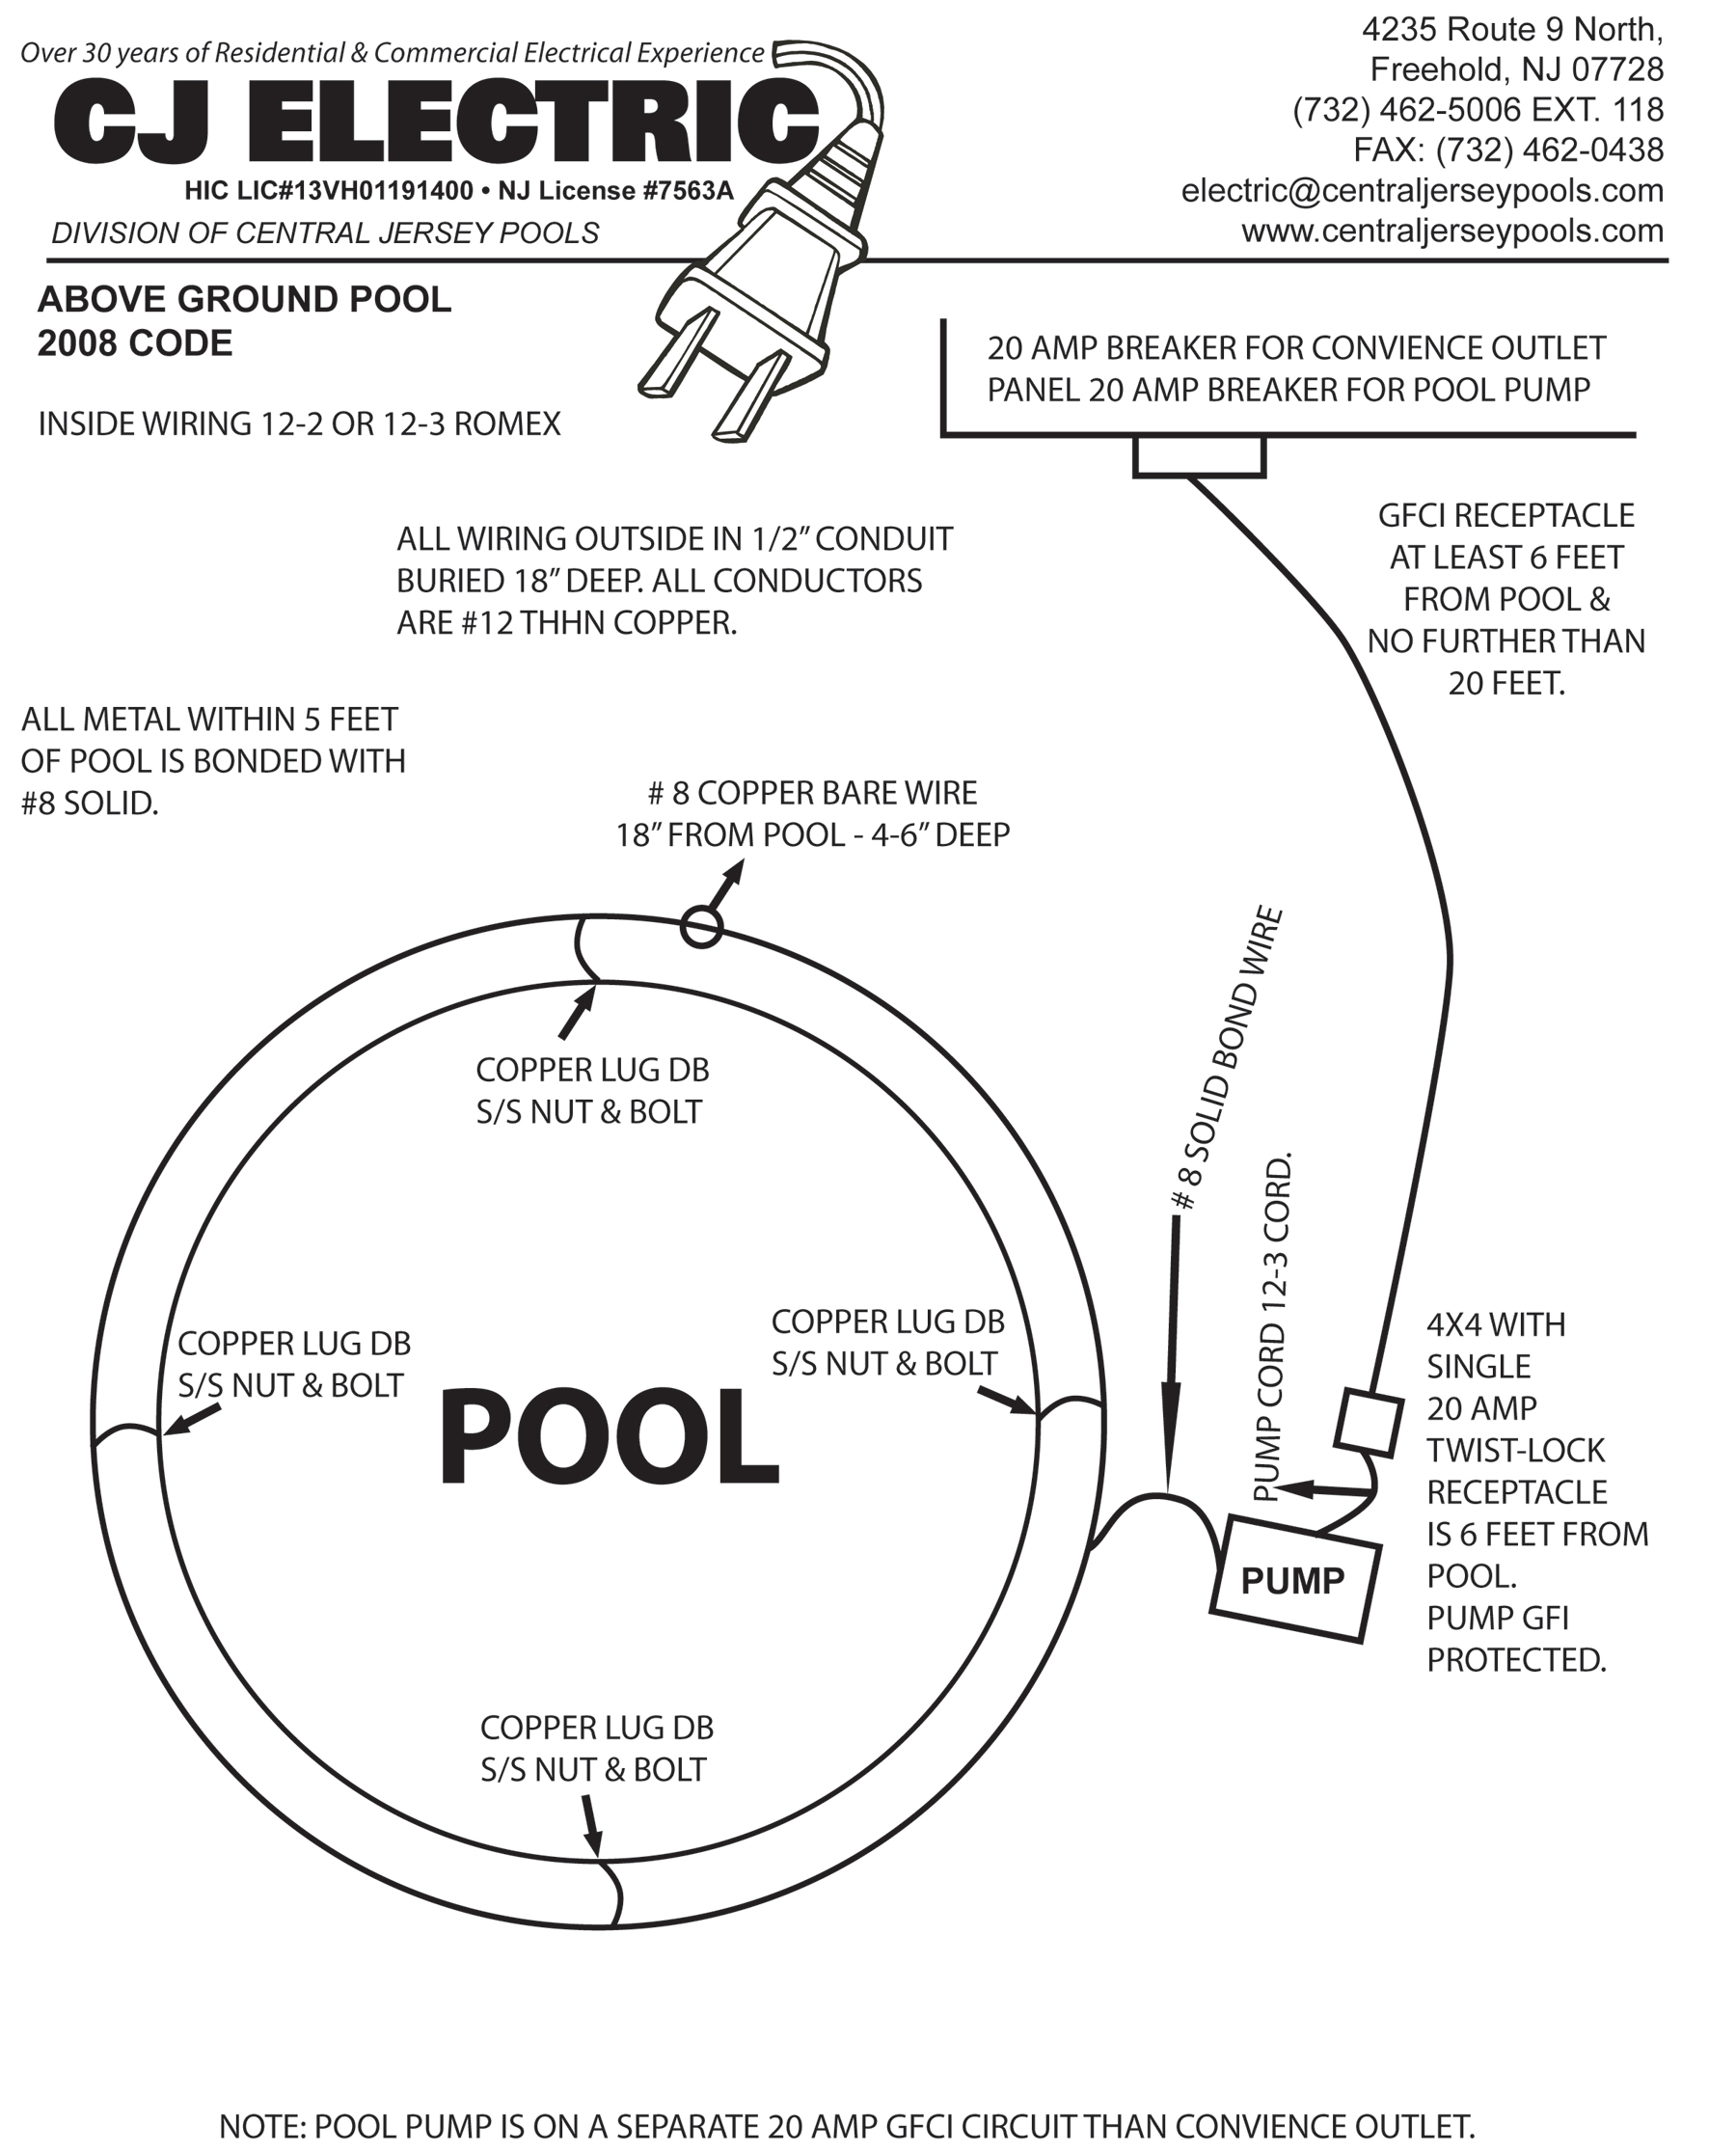 Central Jersey Pools Pool Permit Diagram